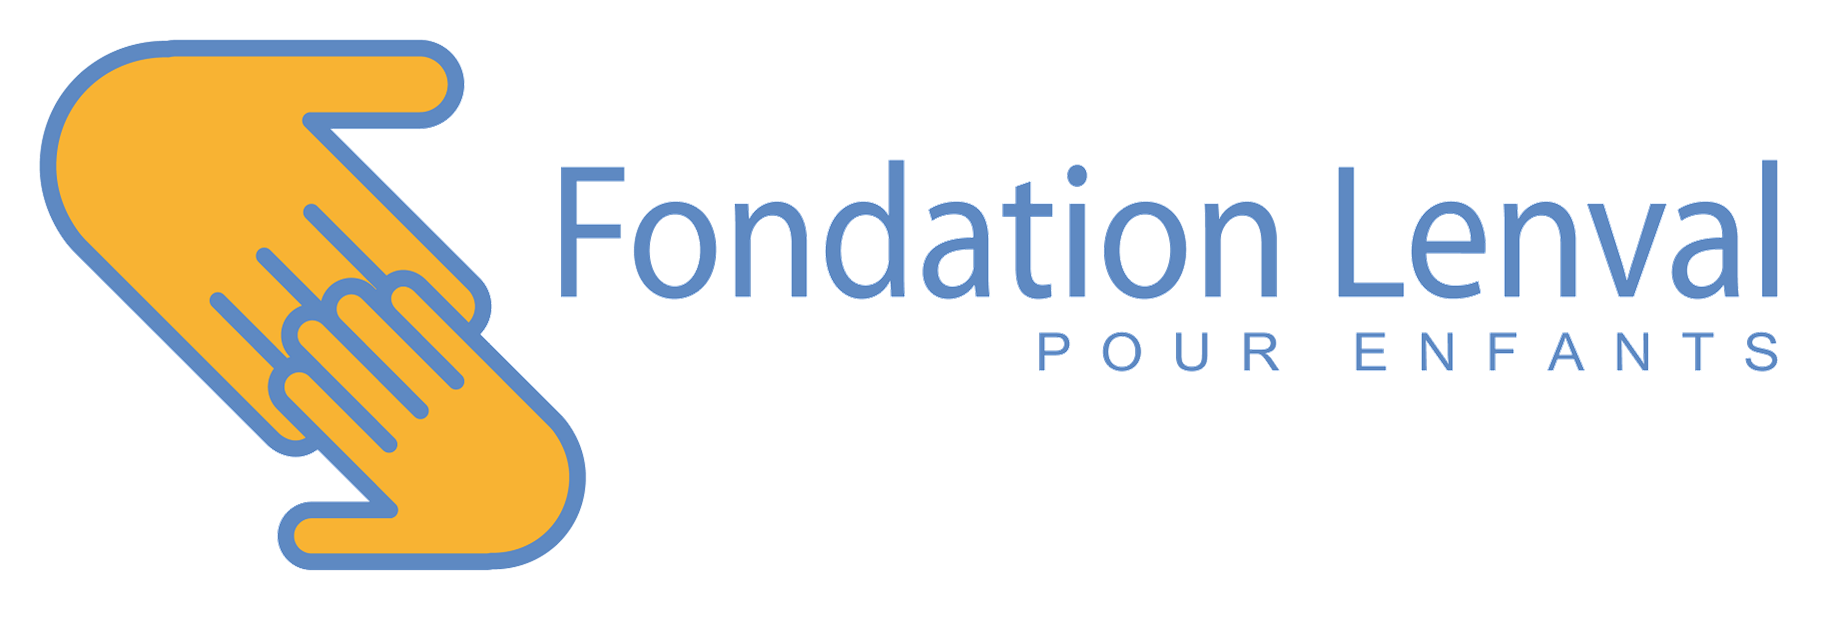 Logo_Fondation_Lenval_transparent